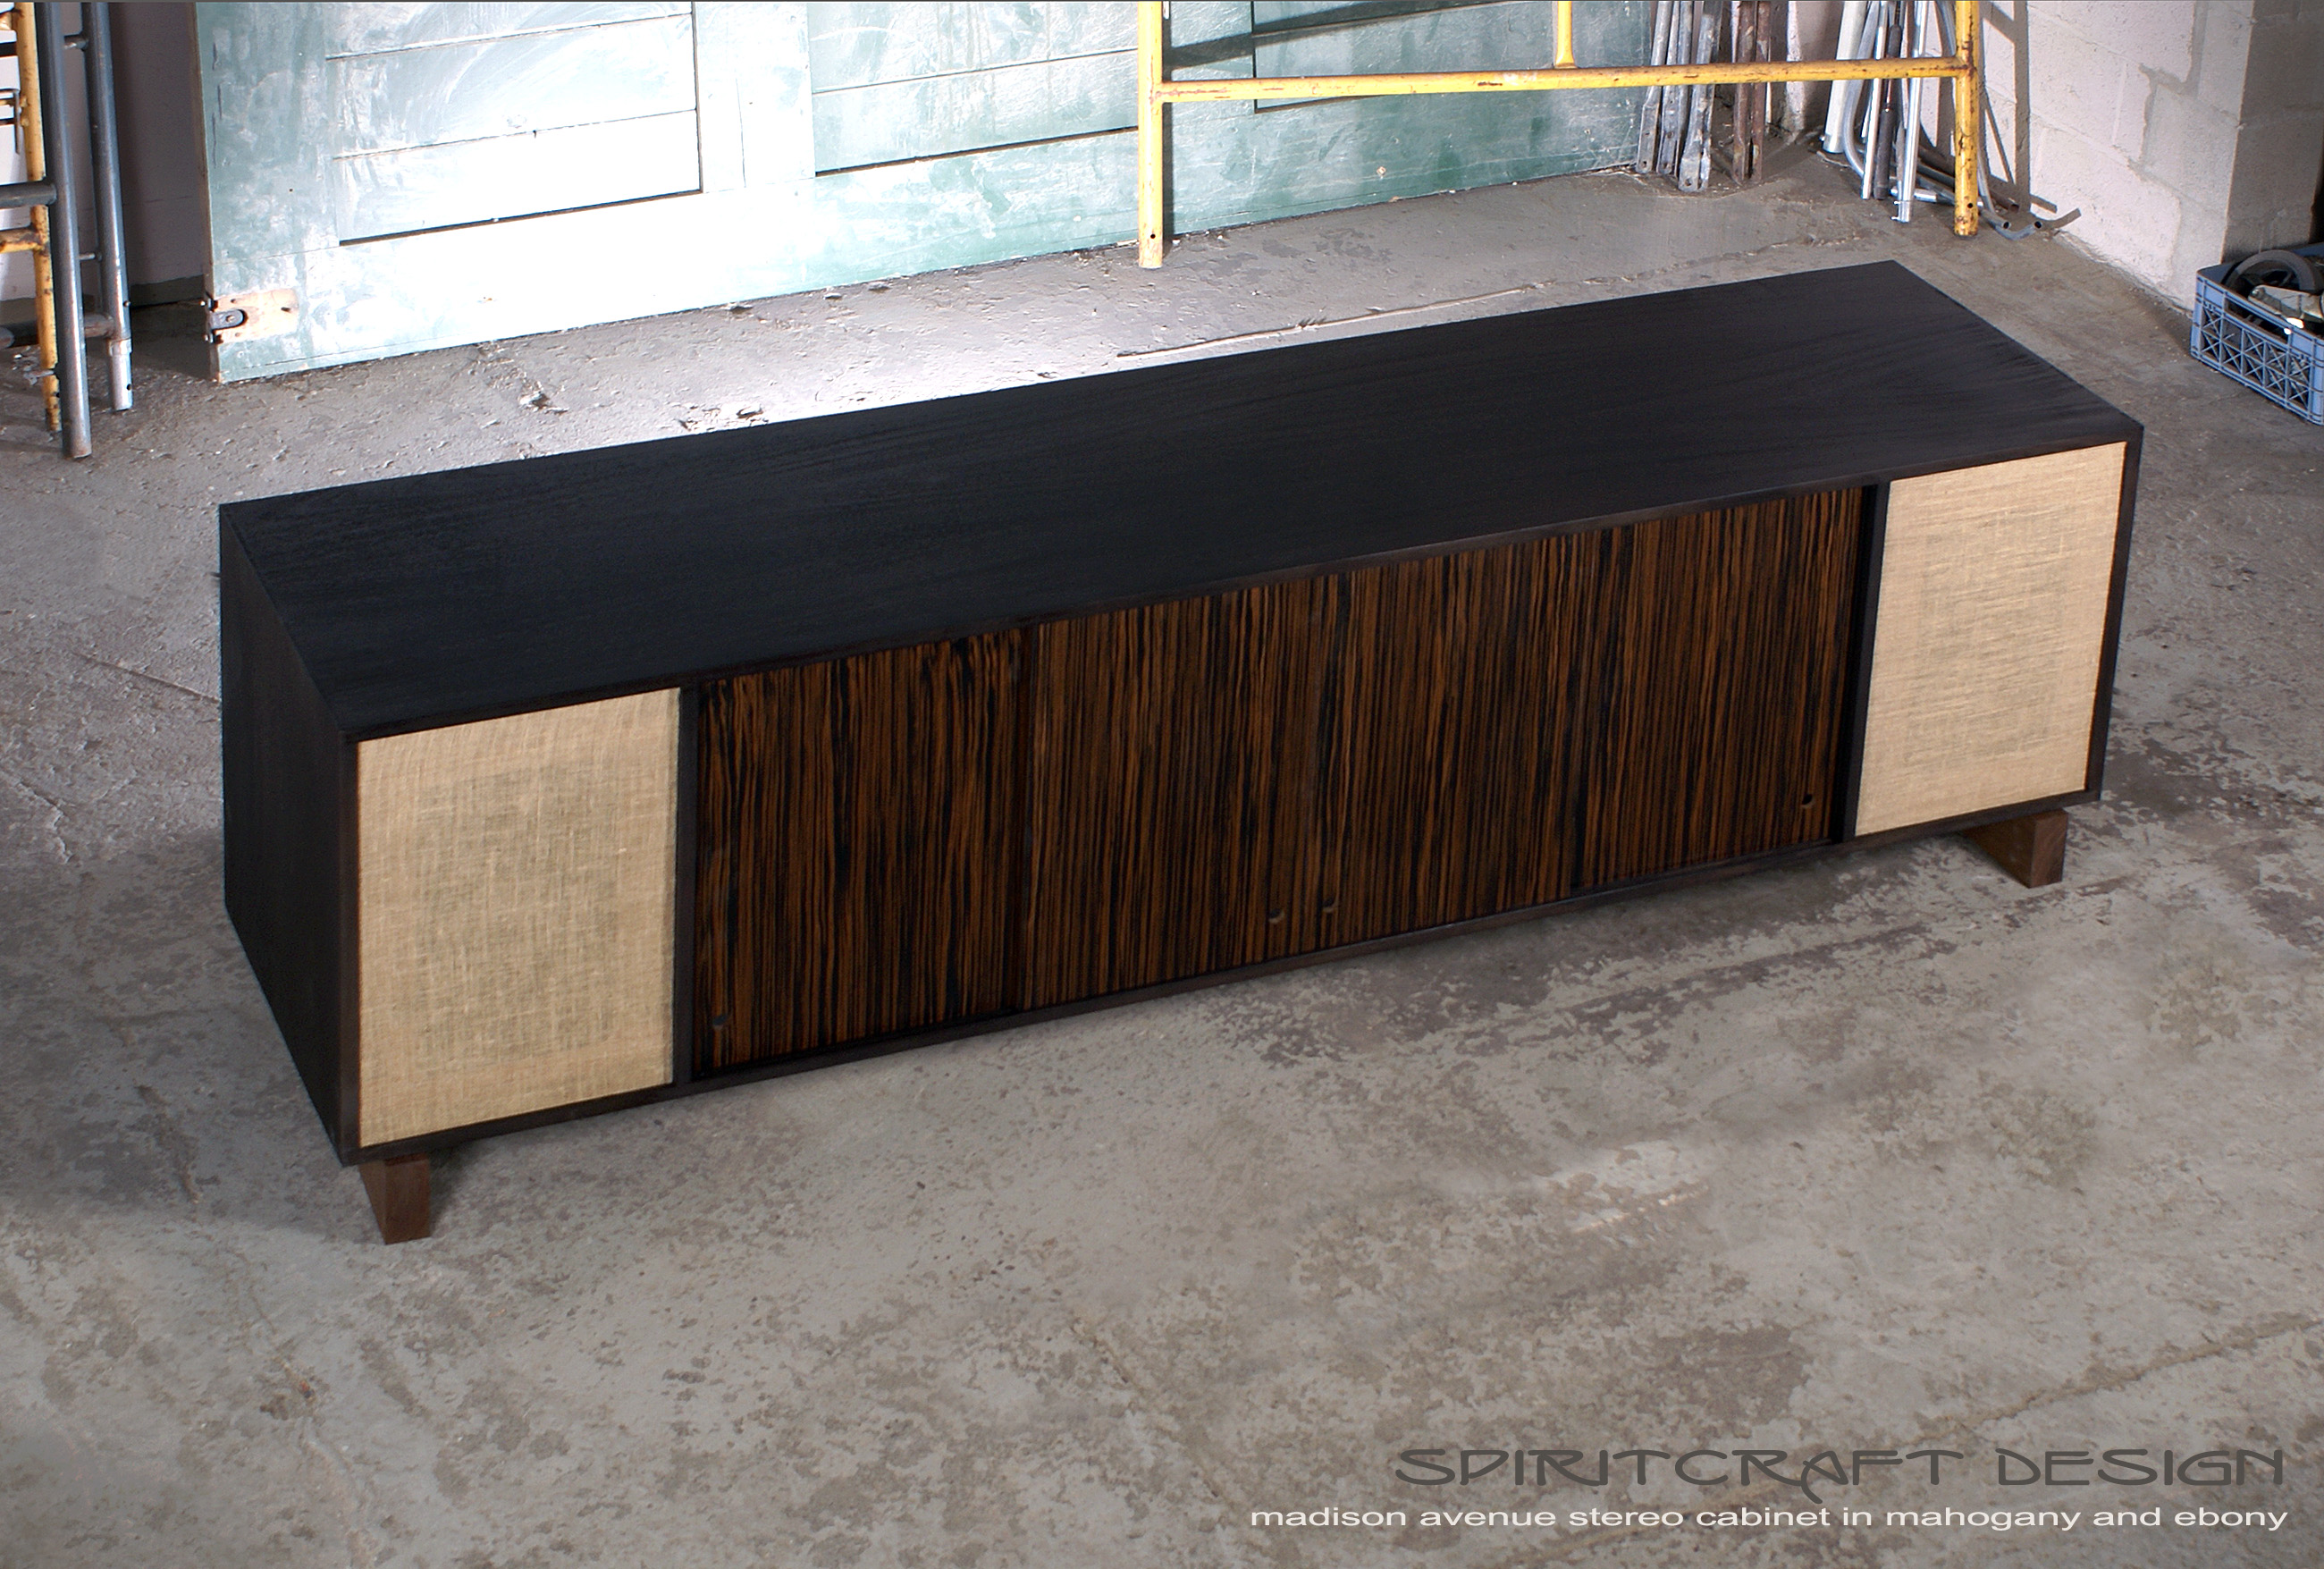 Transformational wall units in mid century style as design statements Interior Design Accents   Mid Century style media console   sideboard for  Chicago client by